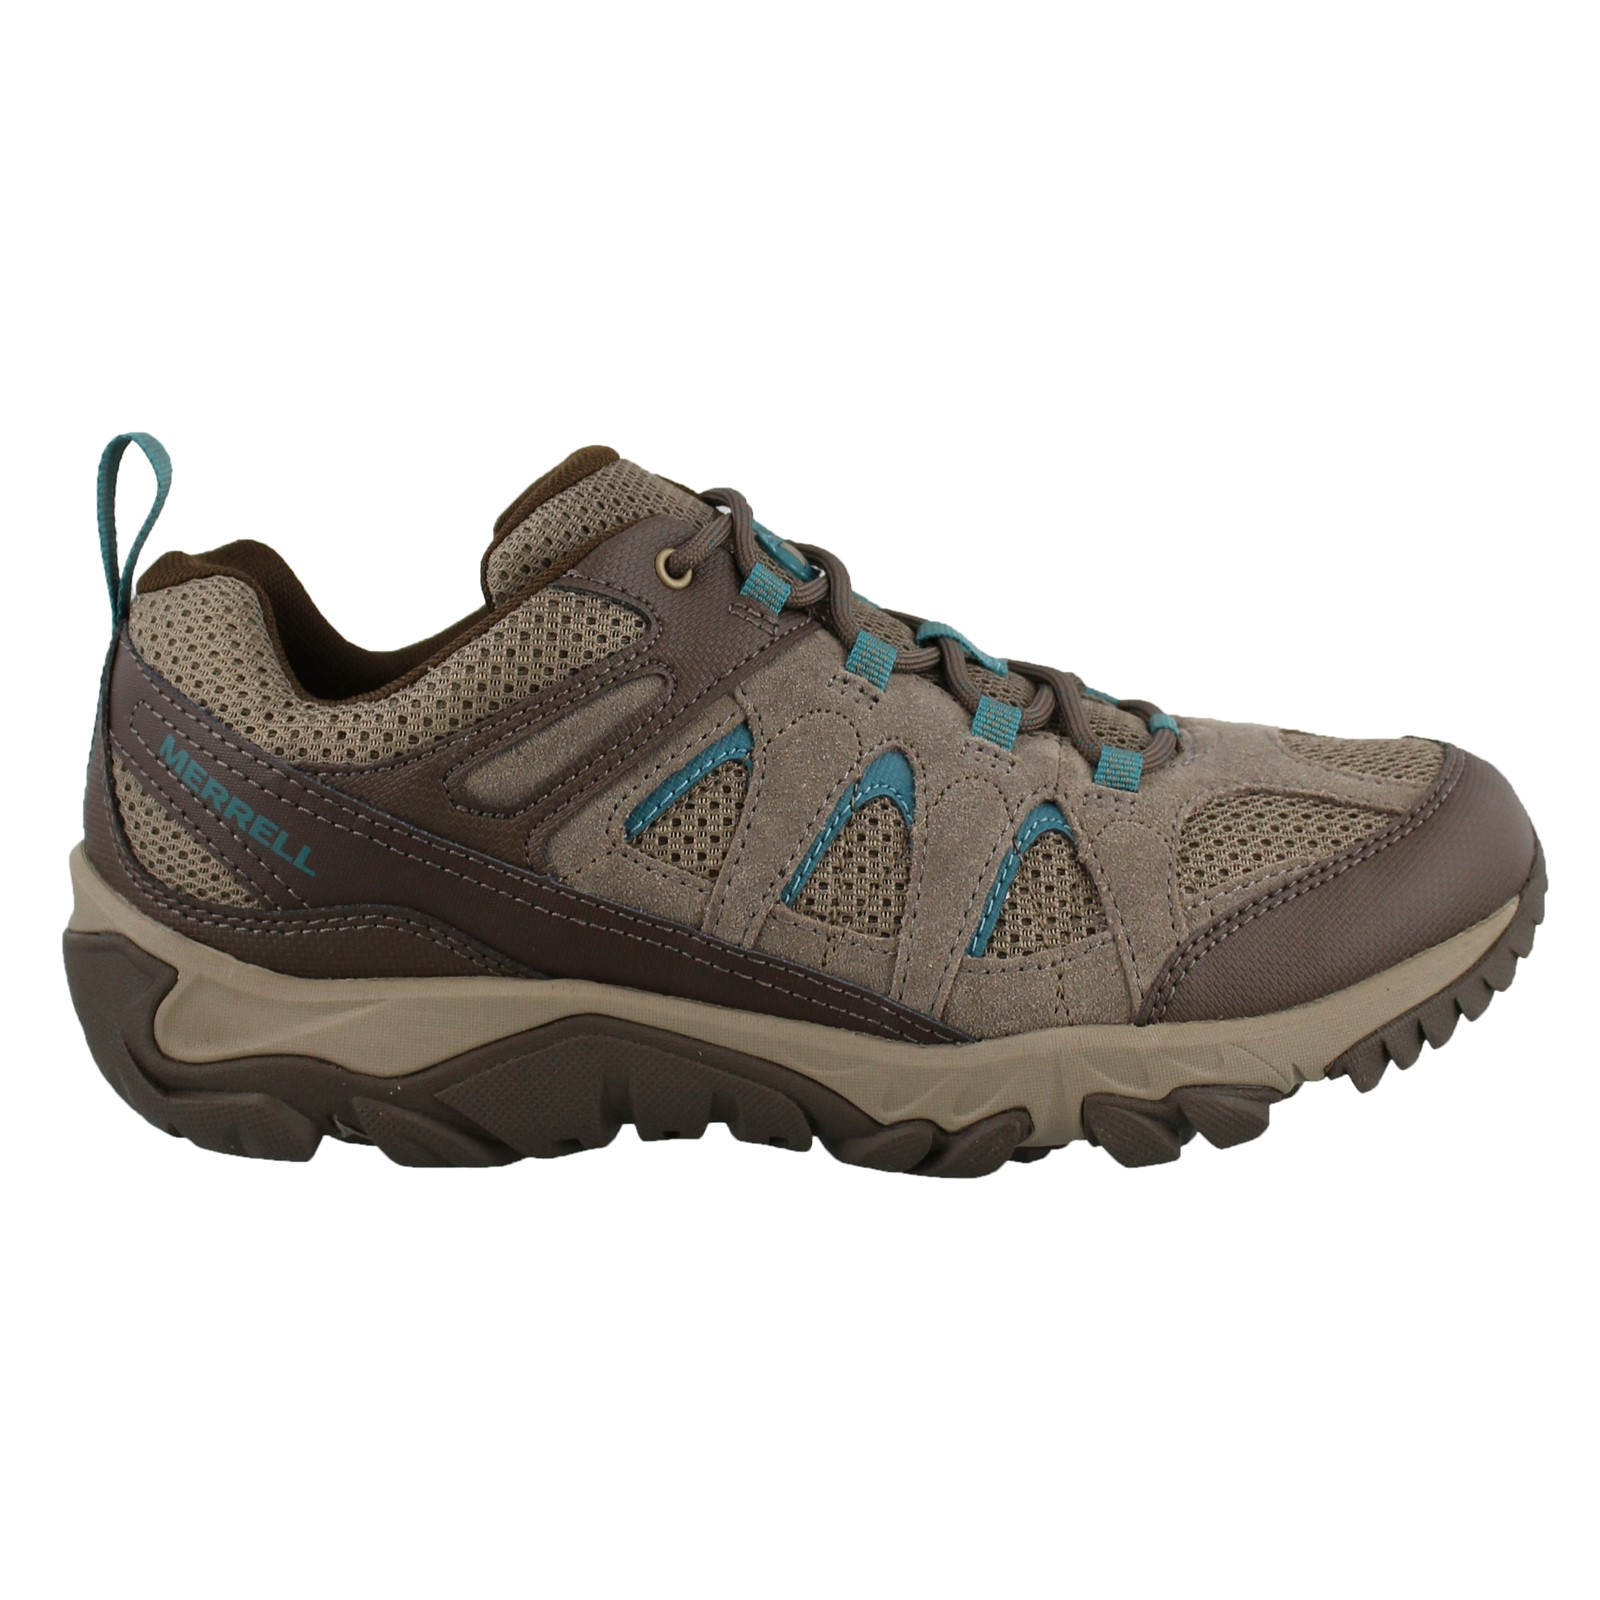 Women's Merrell, Outmost Ventilator Hiking Sneakers